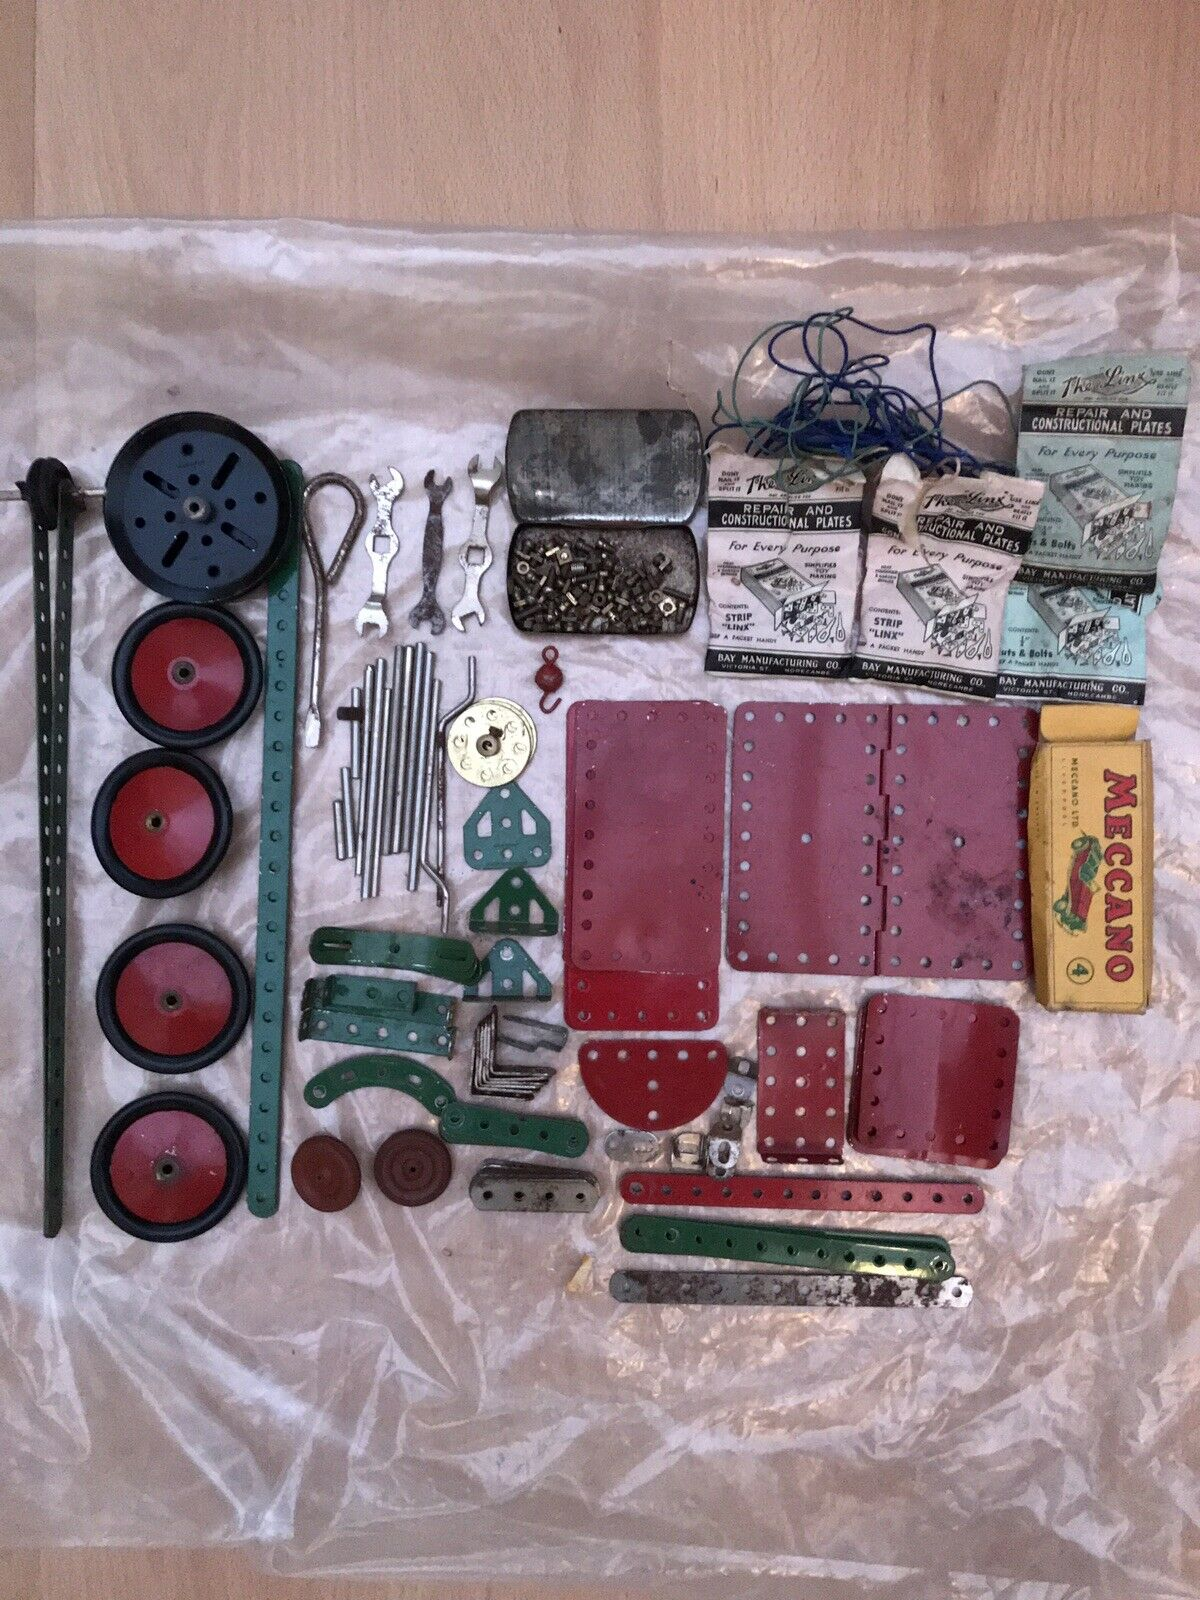 Meccano No.4 Outfit With Original Box And Instructions